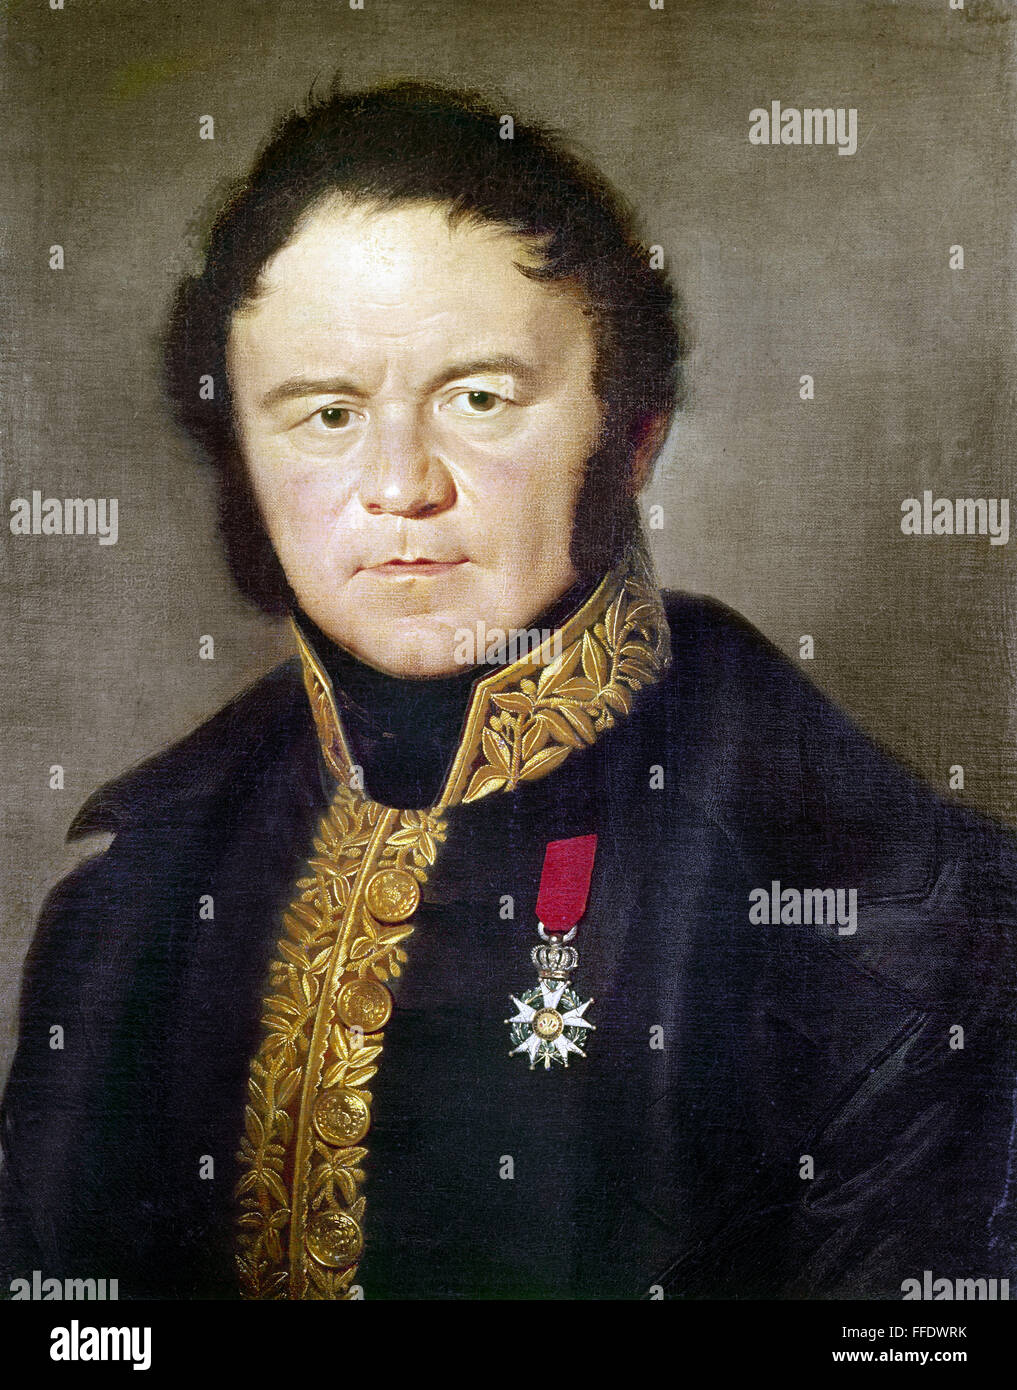 stendhal npseudonym of the french writer marie henri npseudonym of the french writer marie henri beyle stendhal as a consul in oil on canvas 1835 36 by silvestro valeri